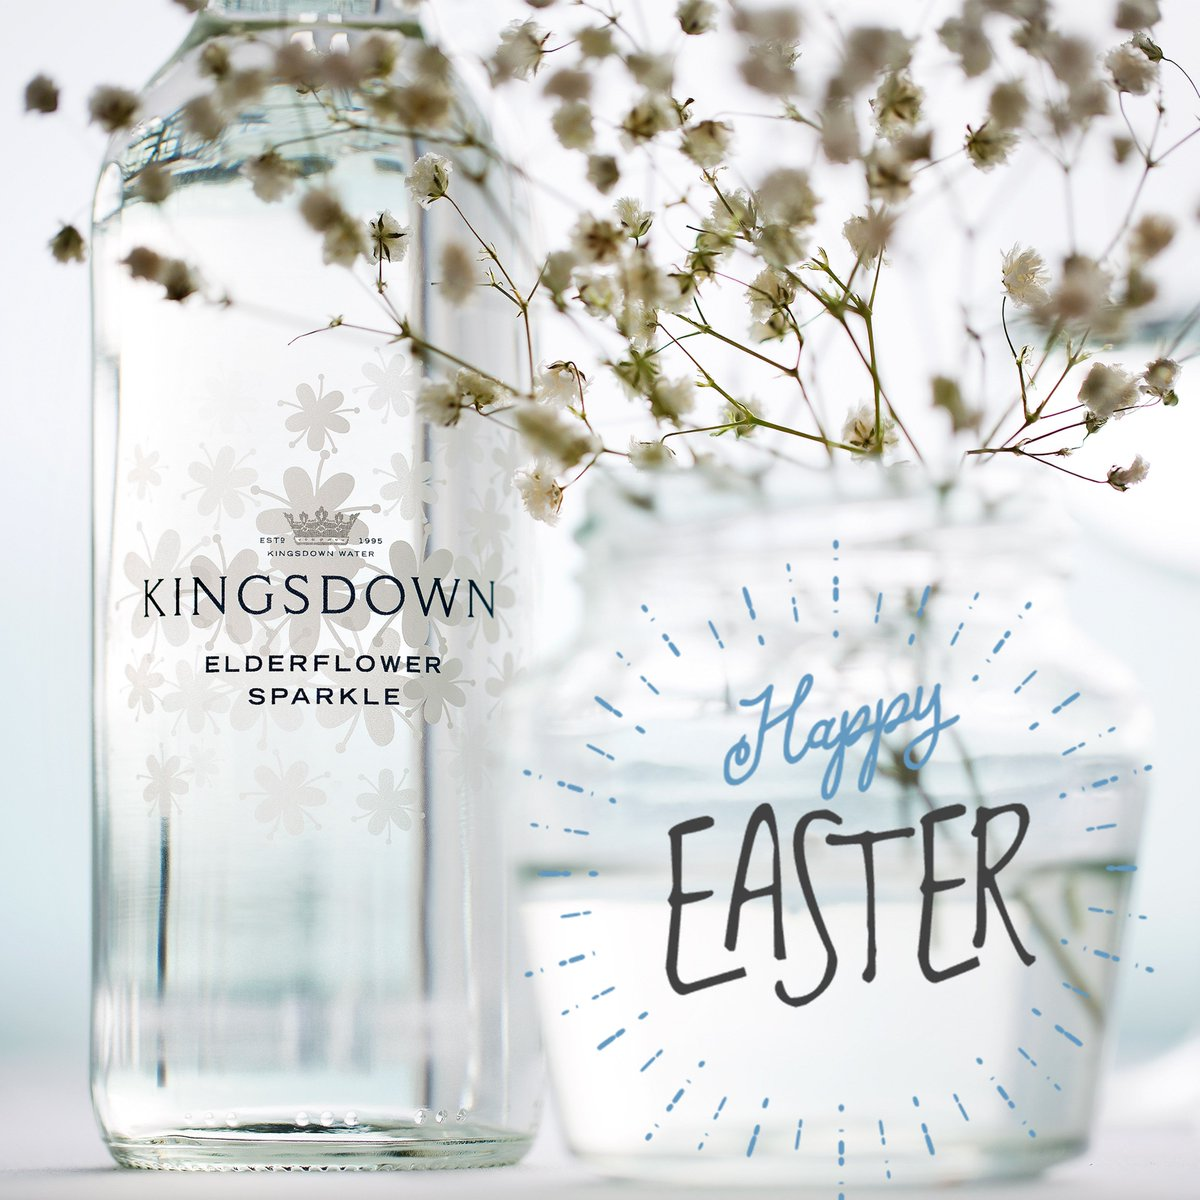 #HappyEaster from the team @kingsdownwater #EasterSunday